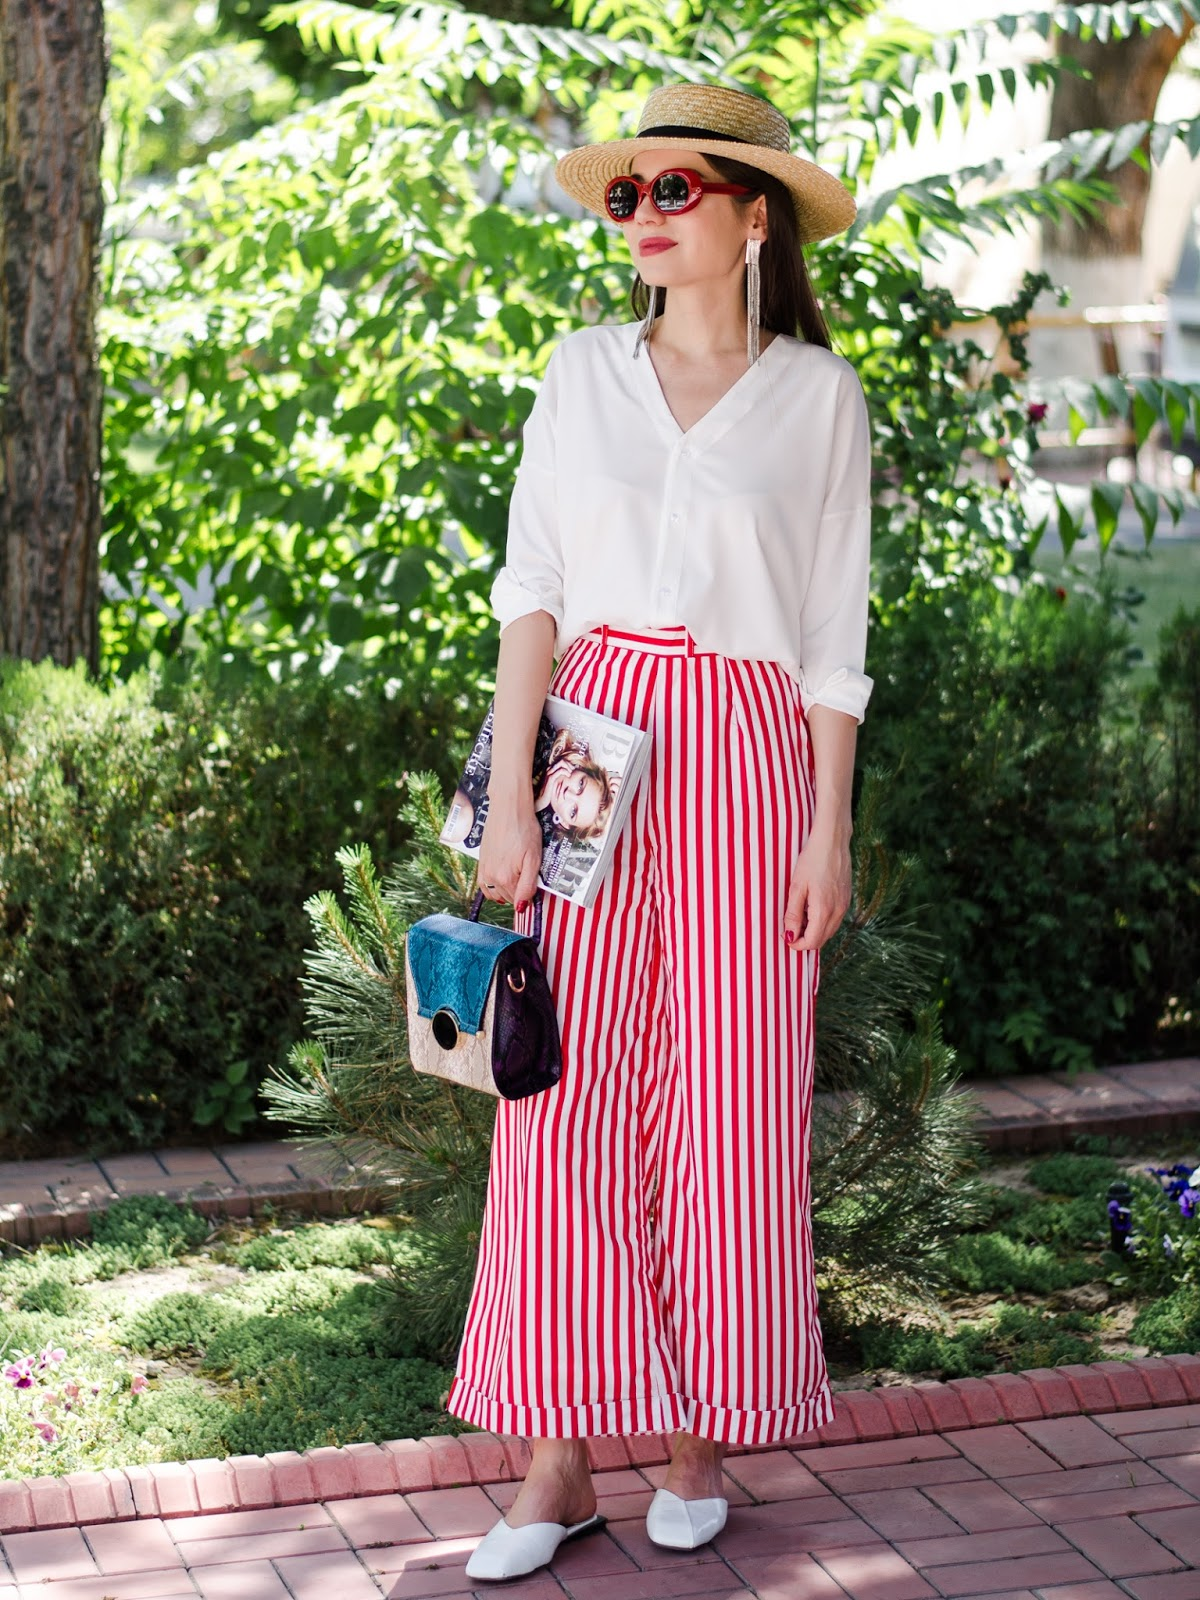 diyorasnotes diyora beta fashion blogger style outfitoftheday lookoftheday striped wide leg pants white shirt straw hat casual outfit white mules red sunglasses